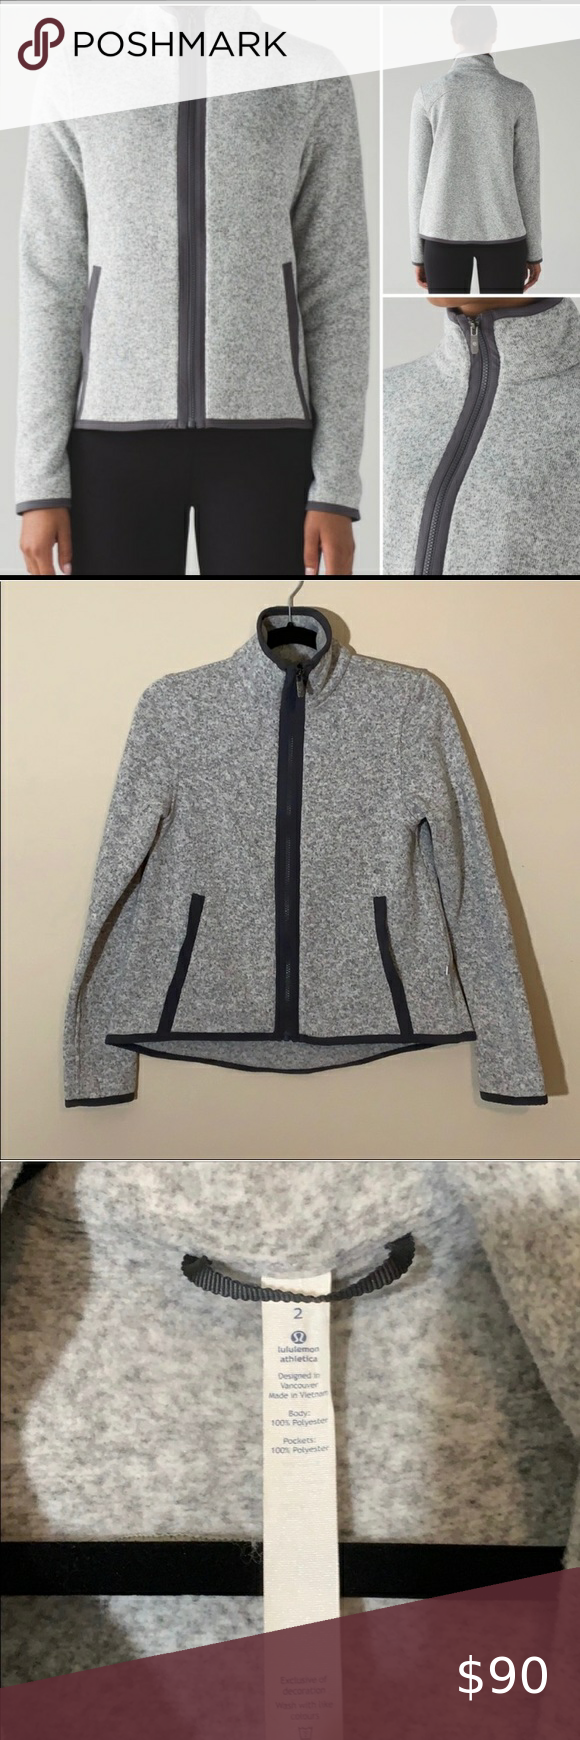 Lululemon fleece zip up Perfect condition Cotton fleece lululemon athletica Jackets & Coats #myposhpicks